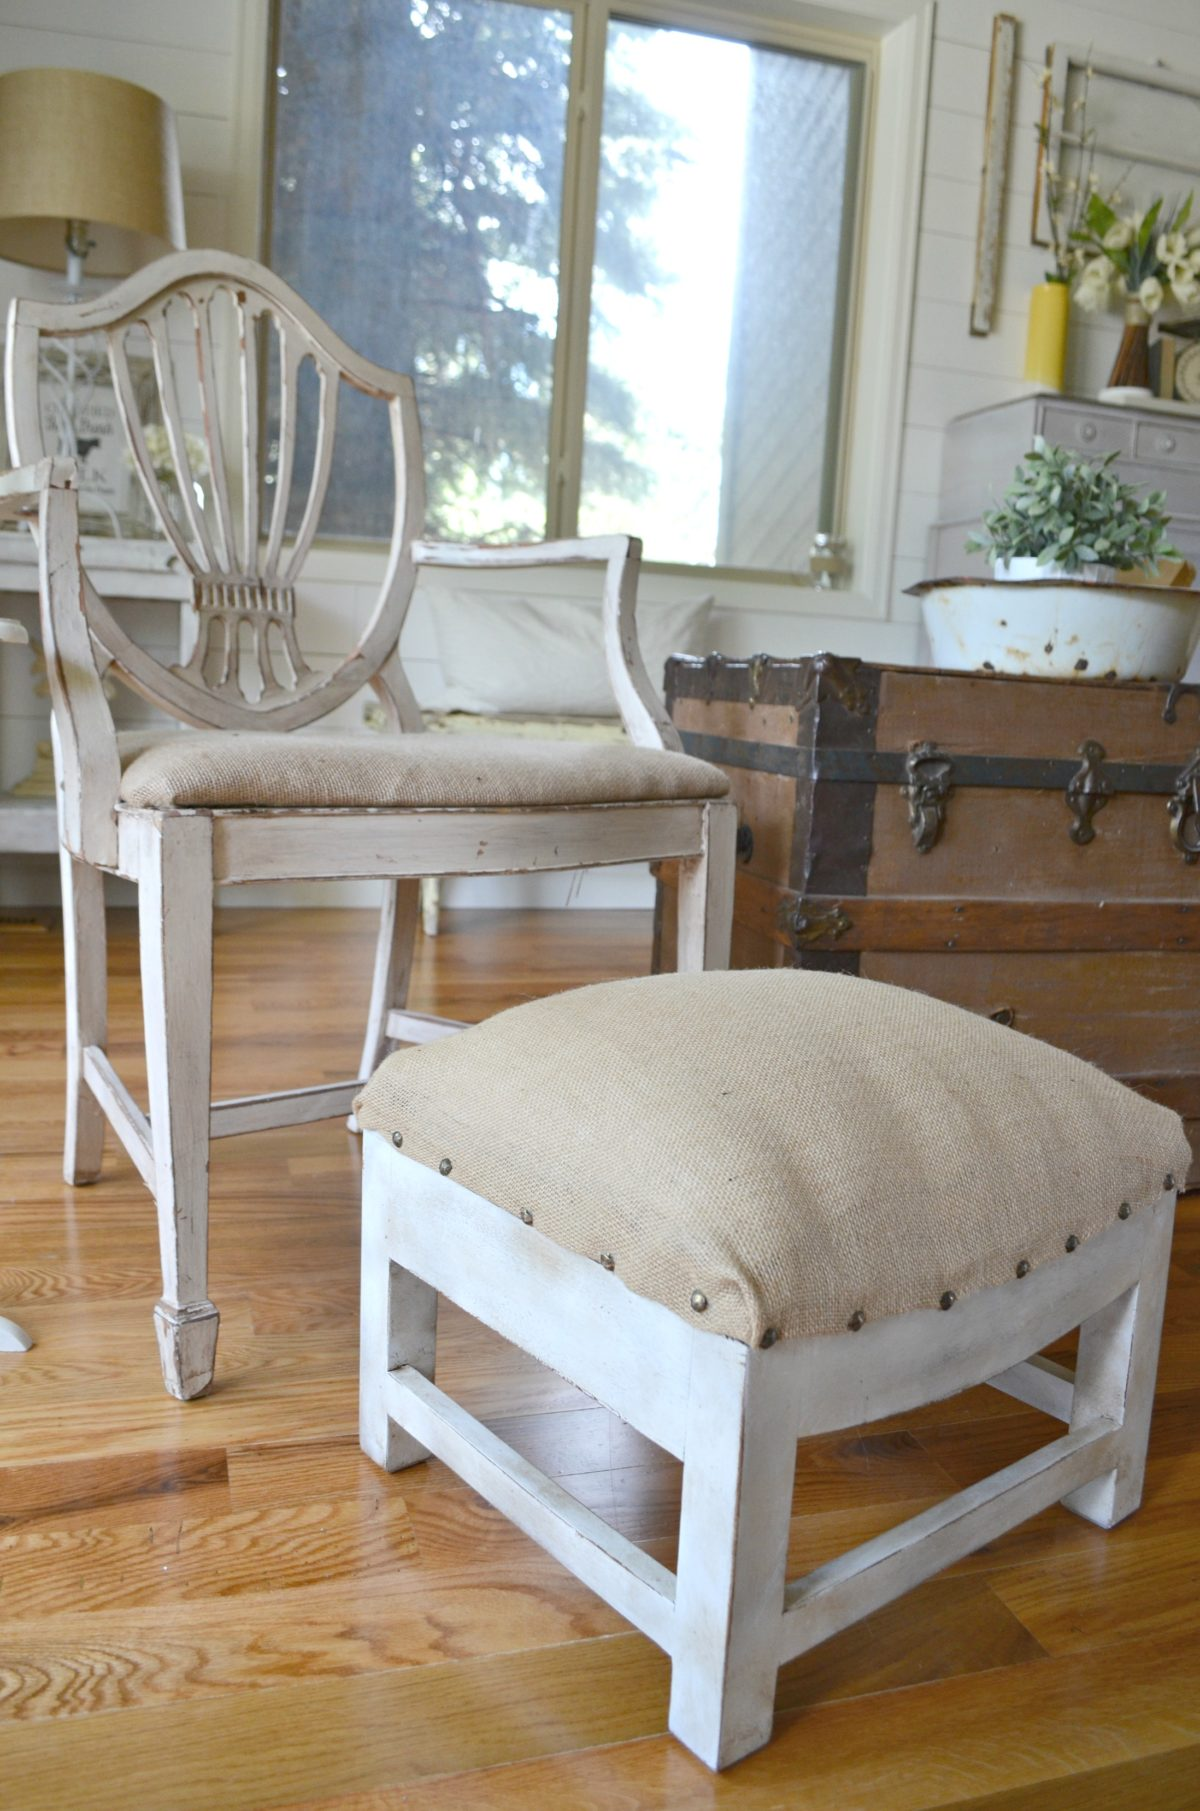 DIY Farmhouse Foot Stool